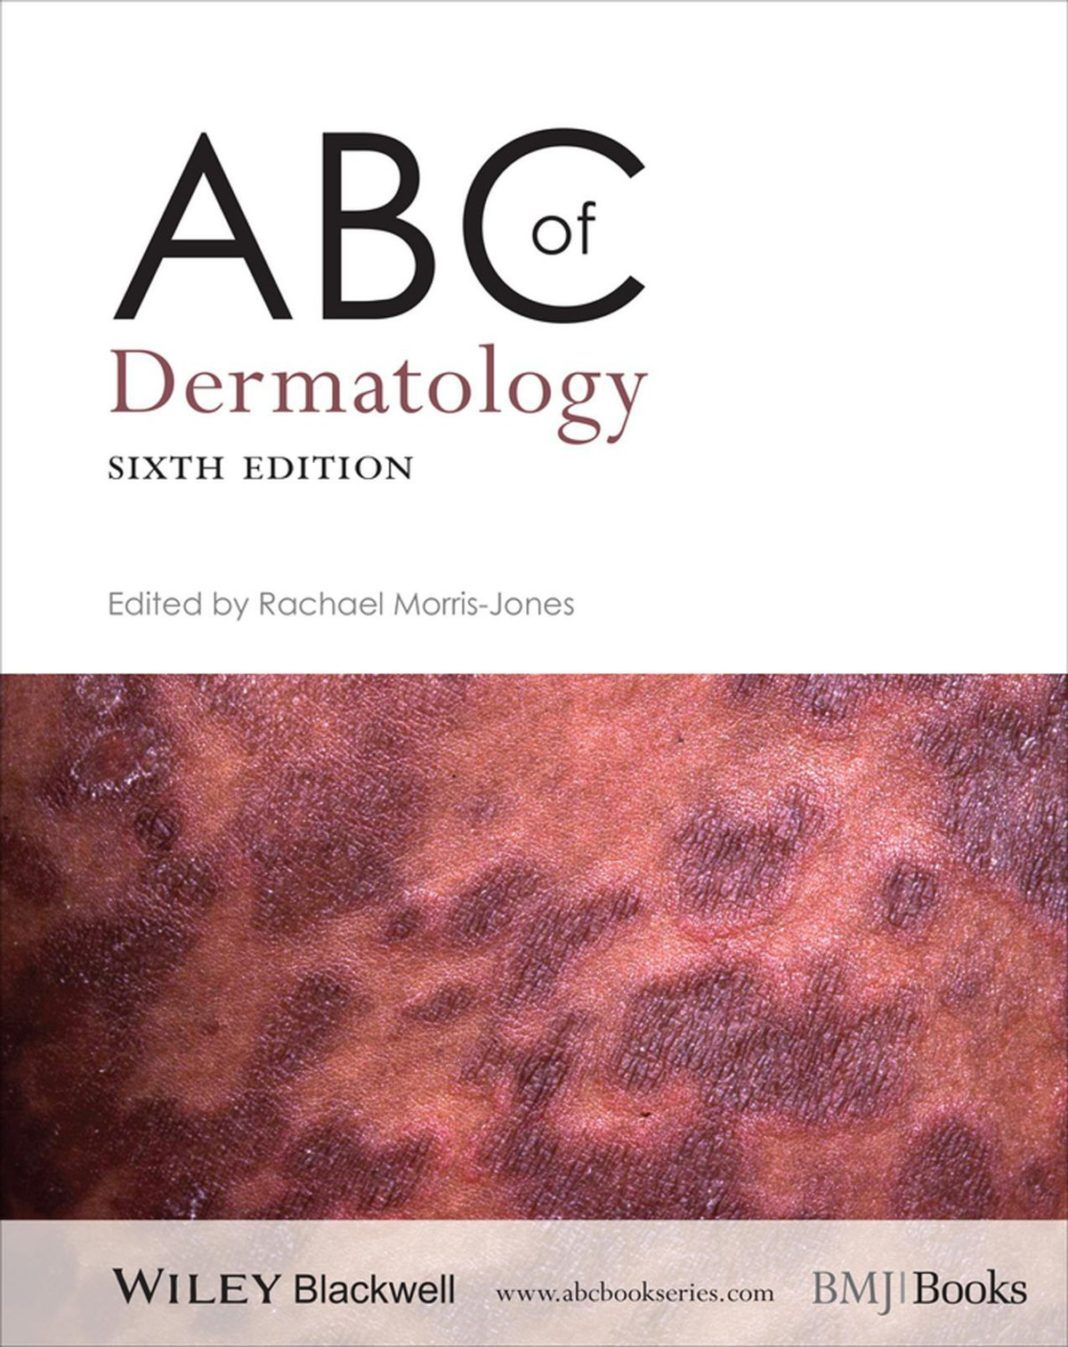 ABC of Dermatology (6th Edition) PDF Free Download (With